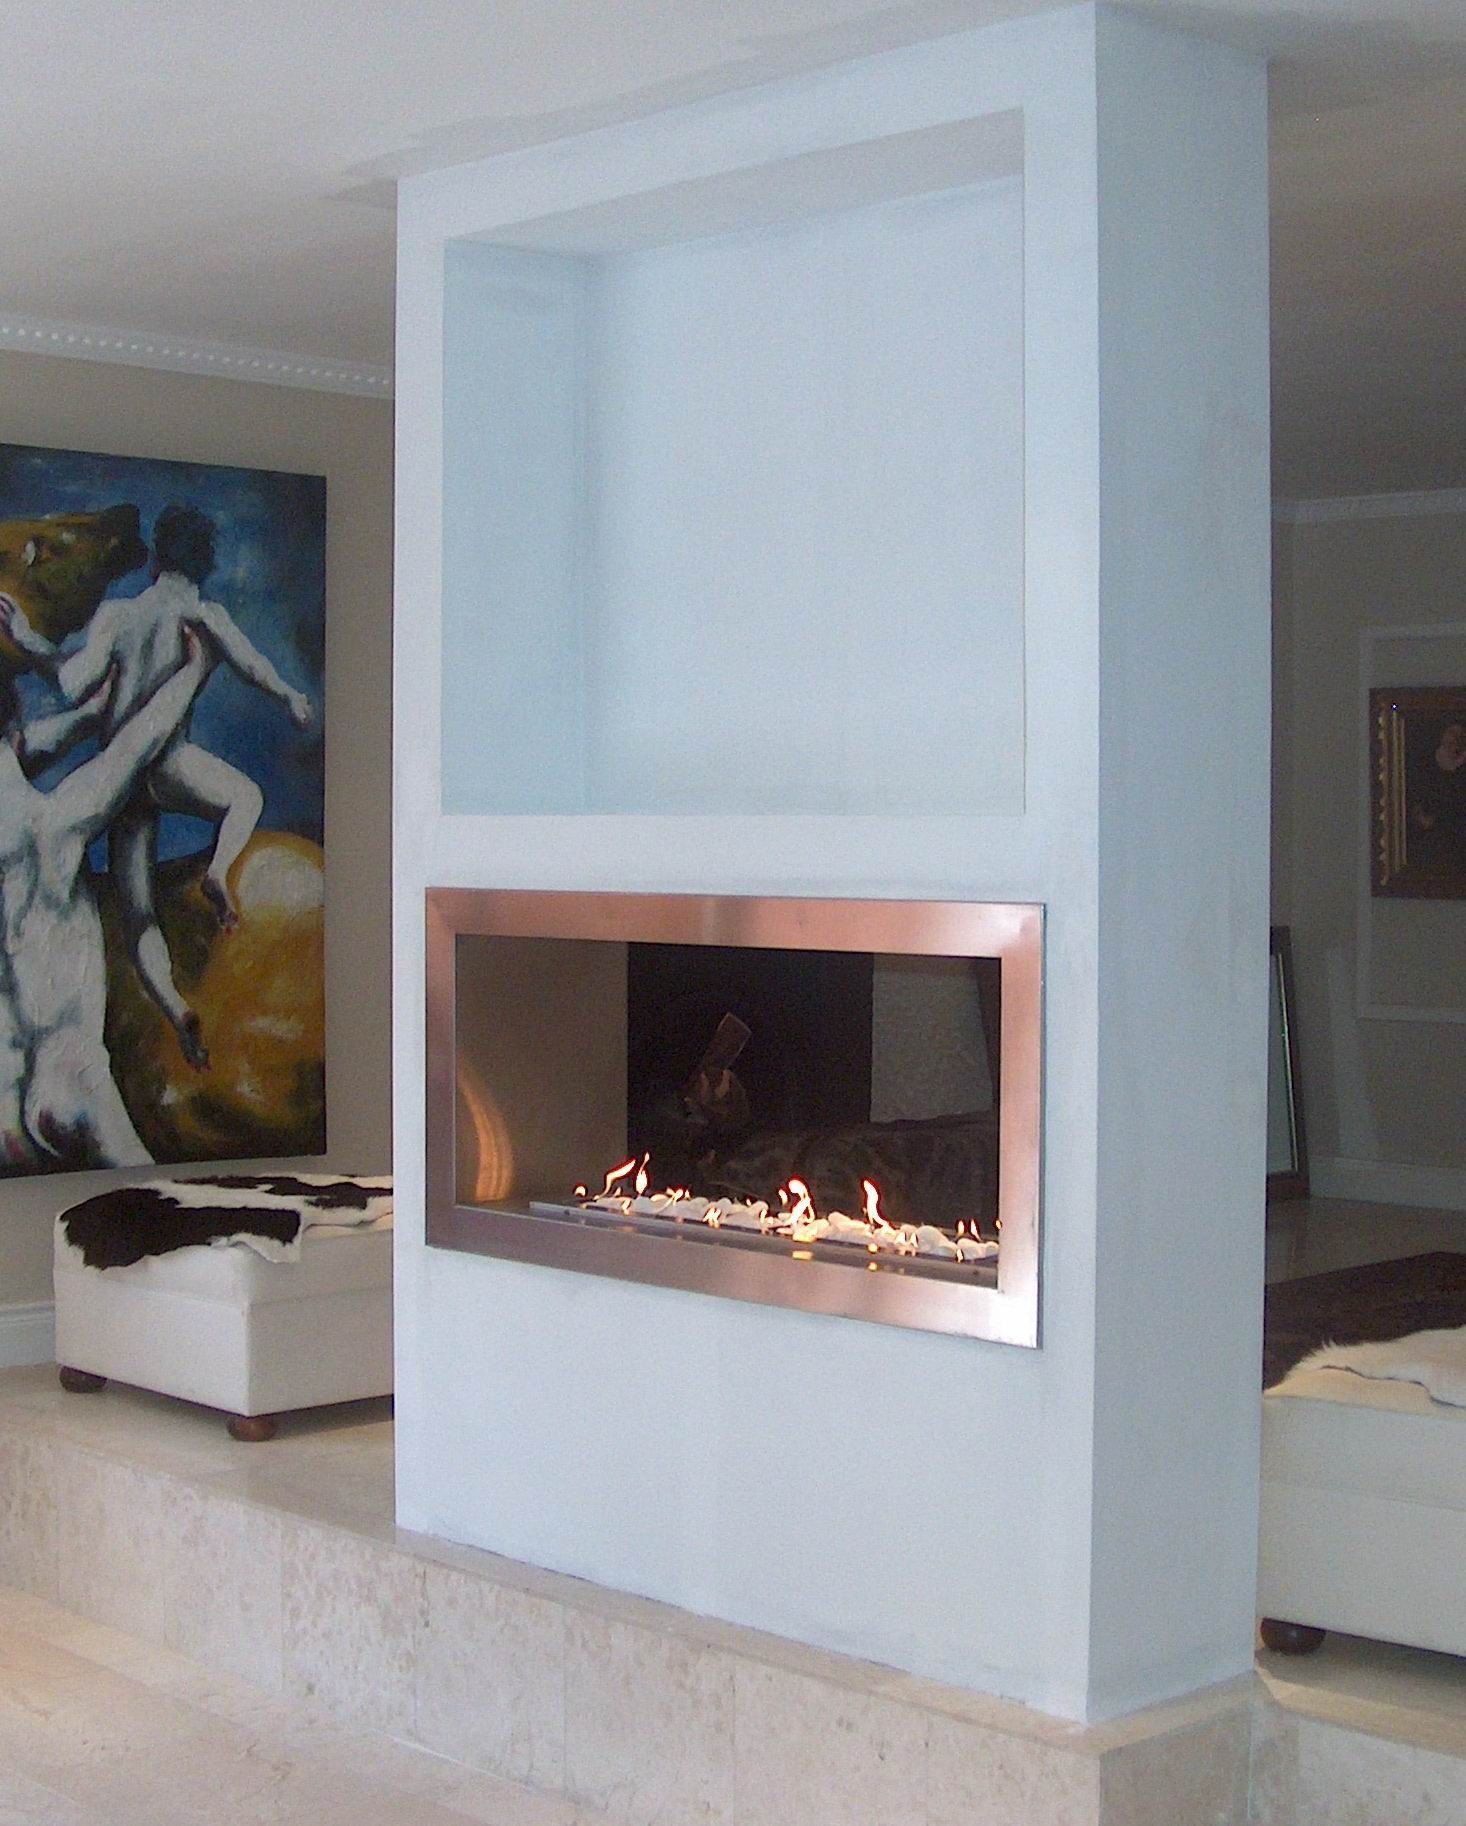 In Wall Gas Fireplace Fresh I Know which Wall I Want A Double Sided Fire Place On D